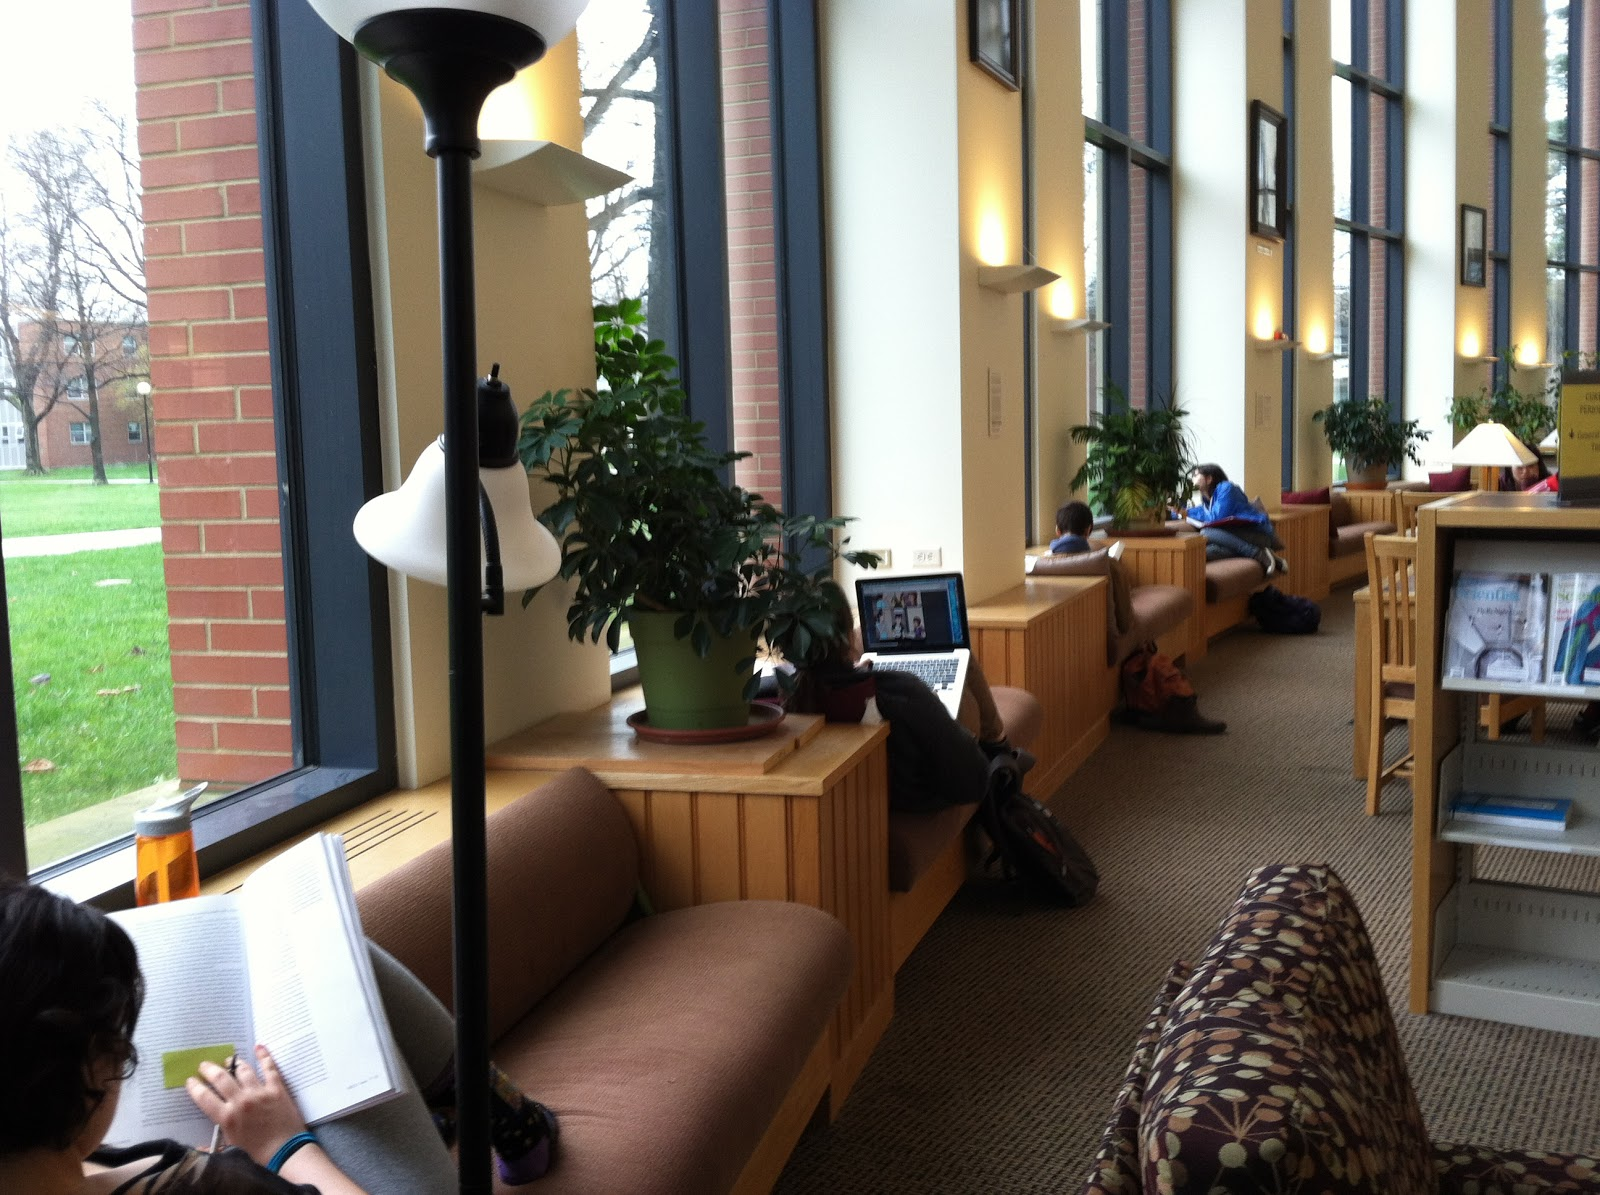 Photograph showing window seats along the curved north interior wall of the Science Library.  Each window seat is occupied by a student; reading, using a laptop or looking out the window.